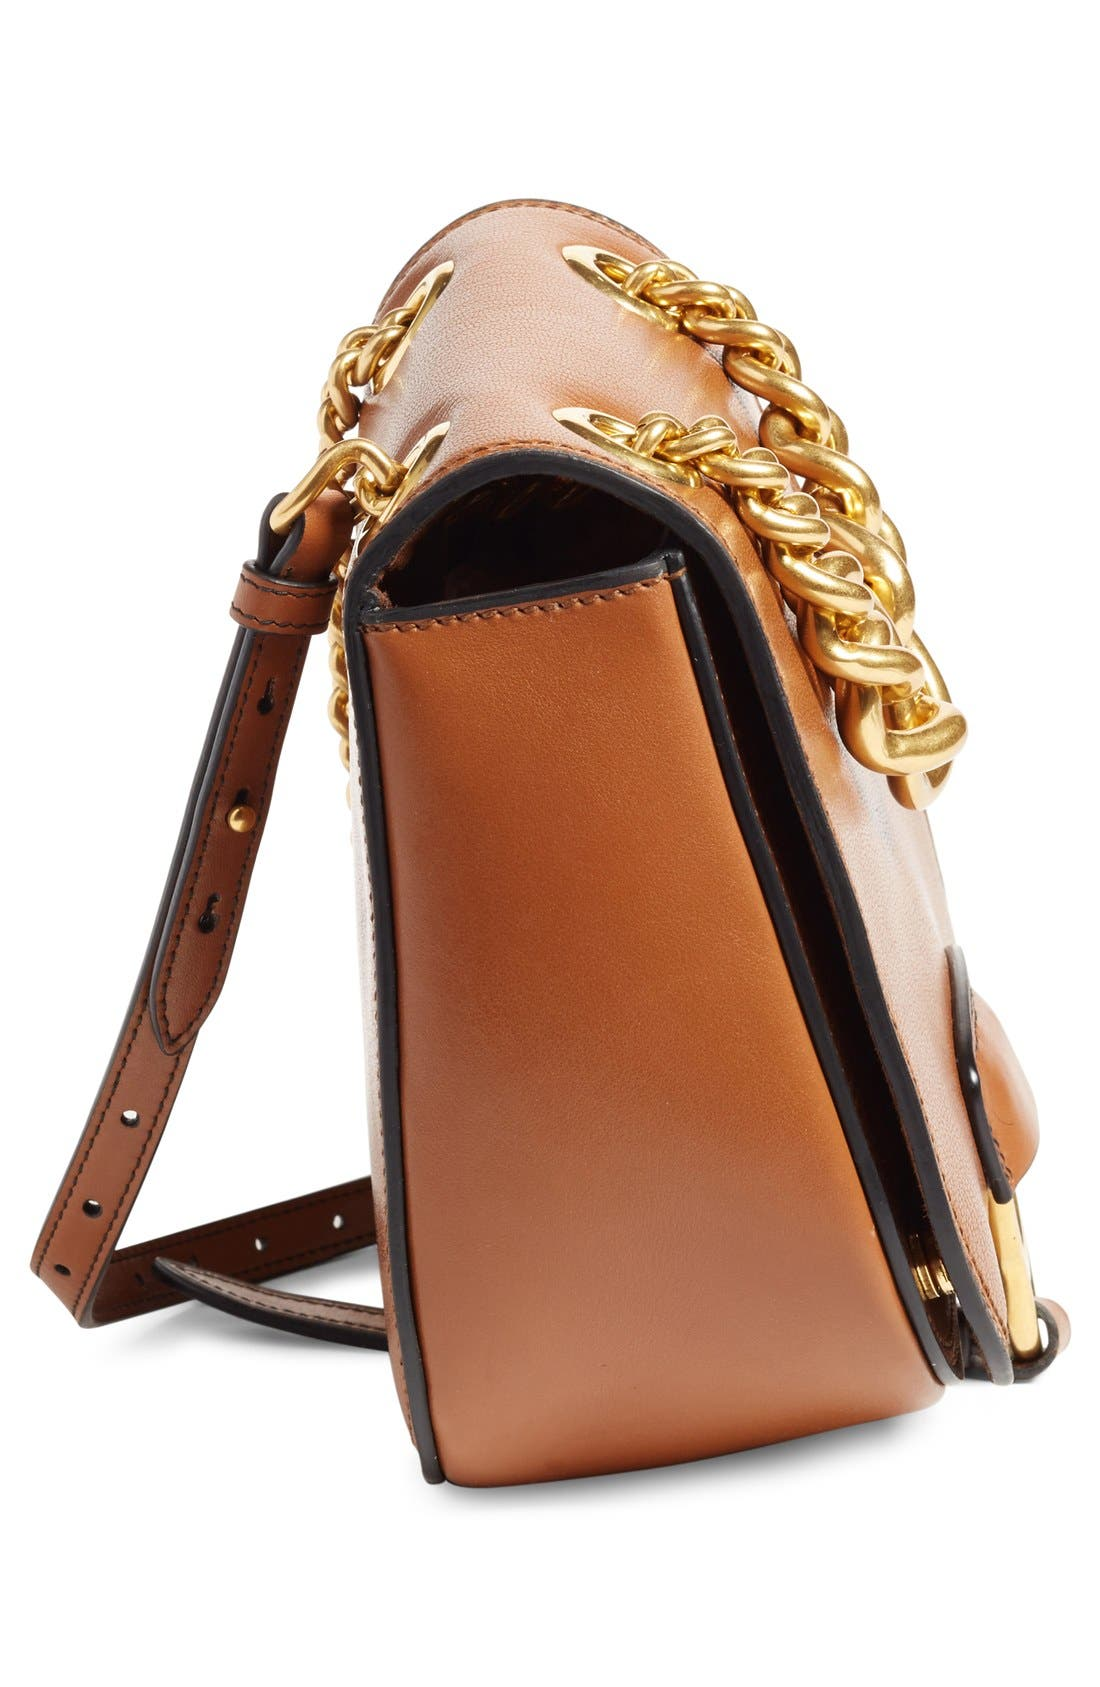 'Dahlia' Goatskin Leather Saddle Bag,                             Alternate thumbnail 10, color,